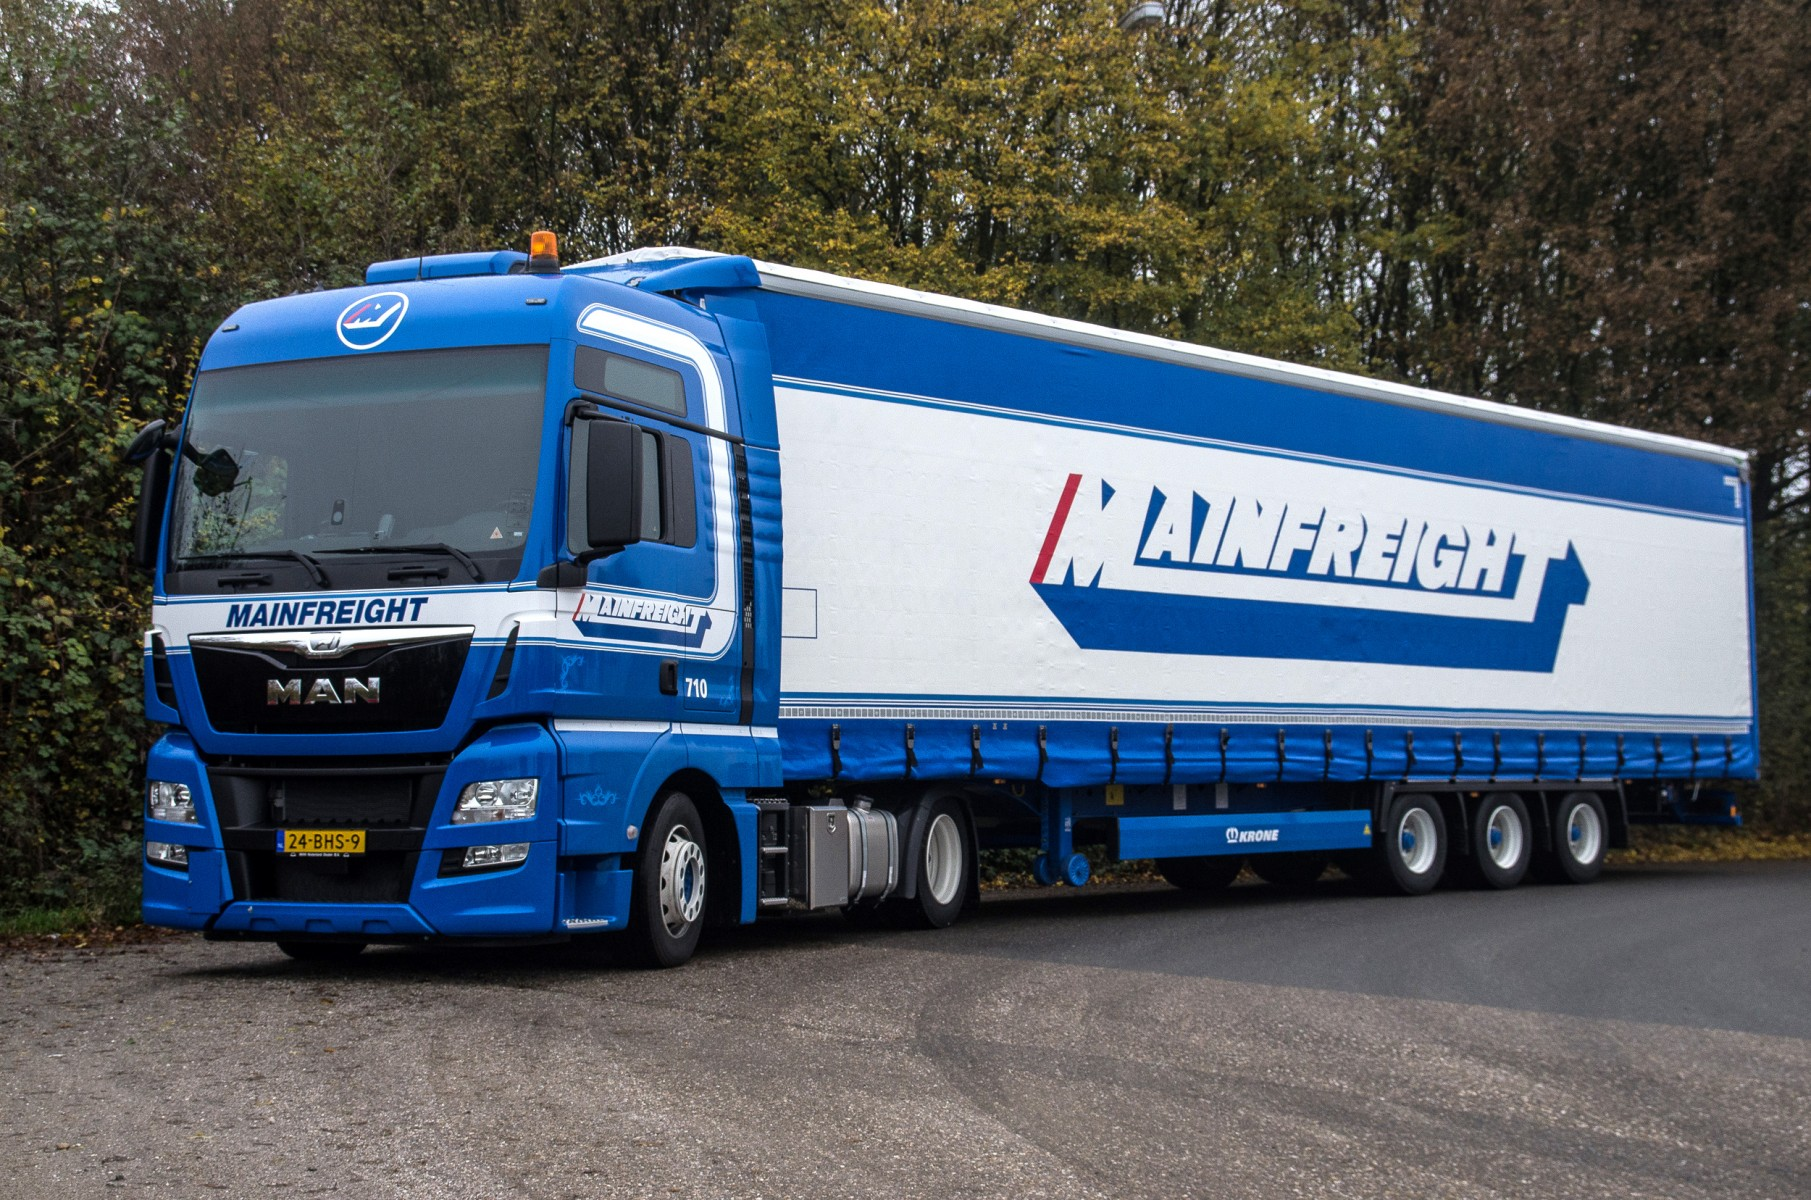 MAN voor Mainfreight